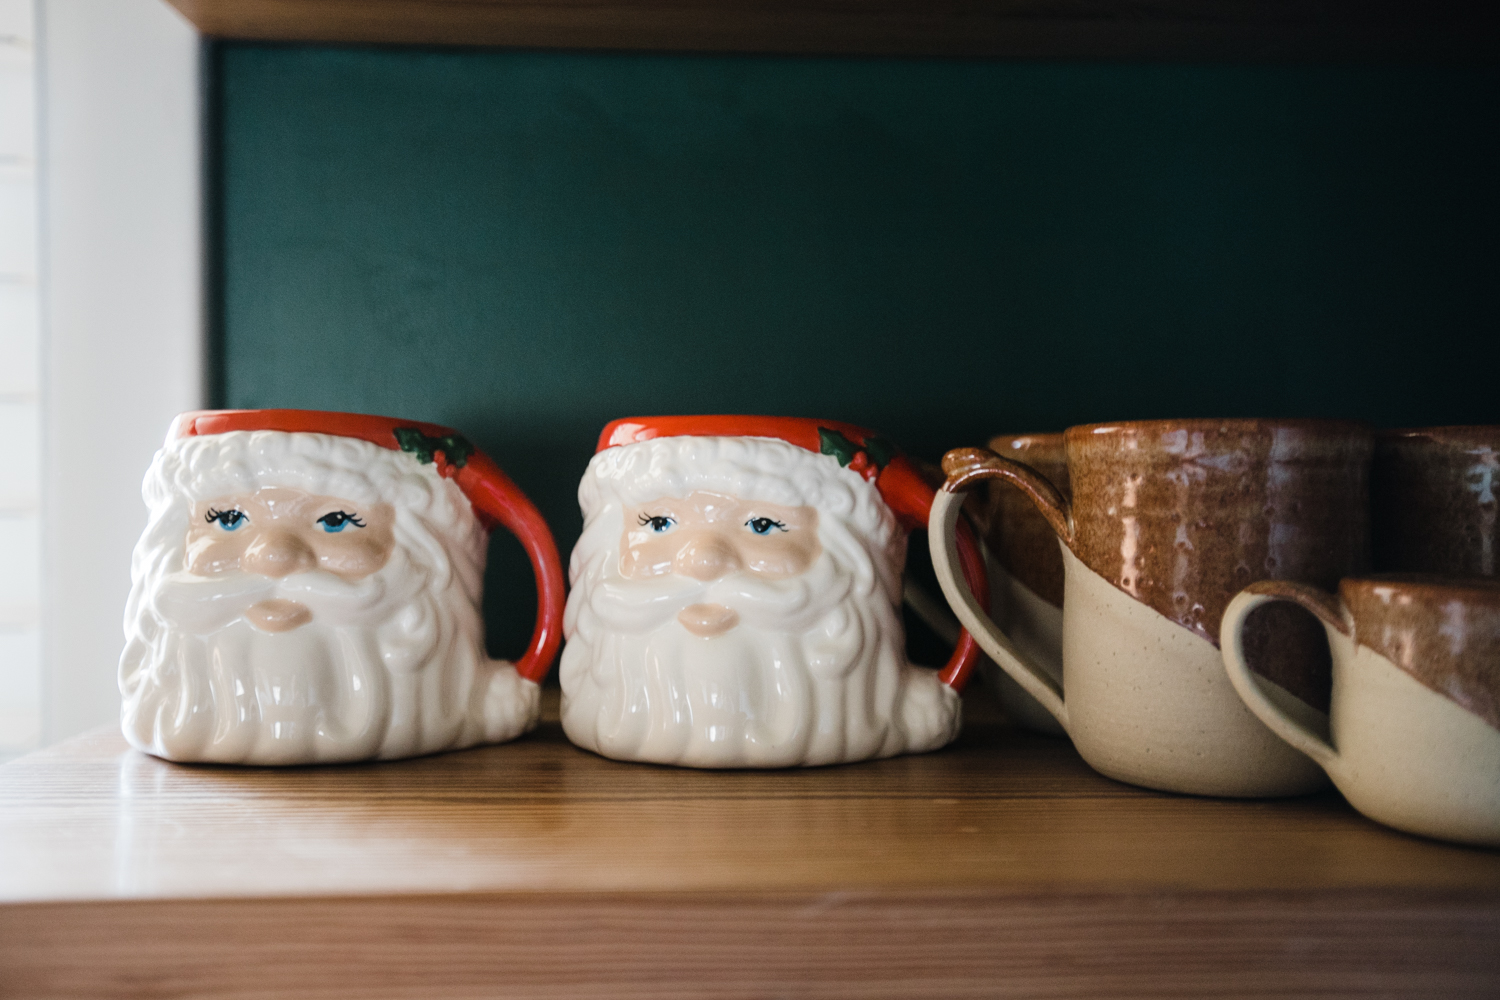 Who drinks out of a Santa head mug daily during the month of December? ME.